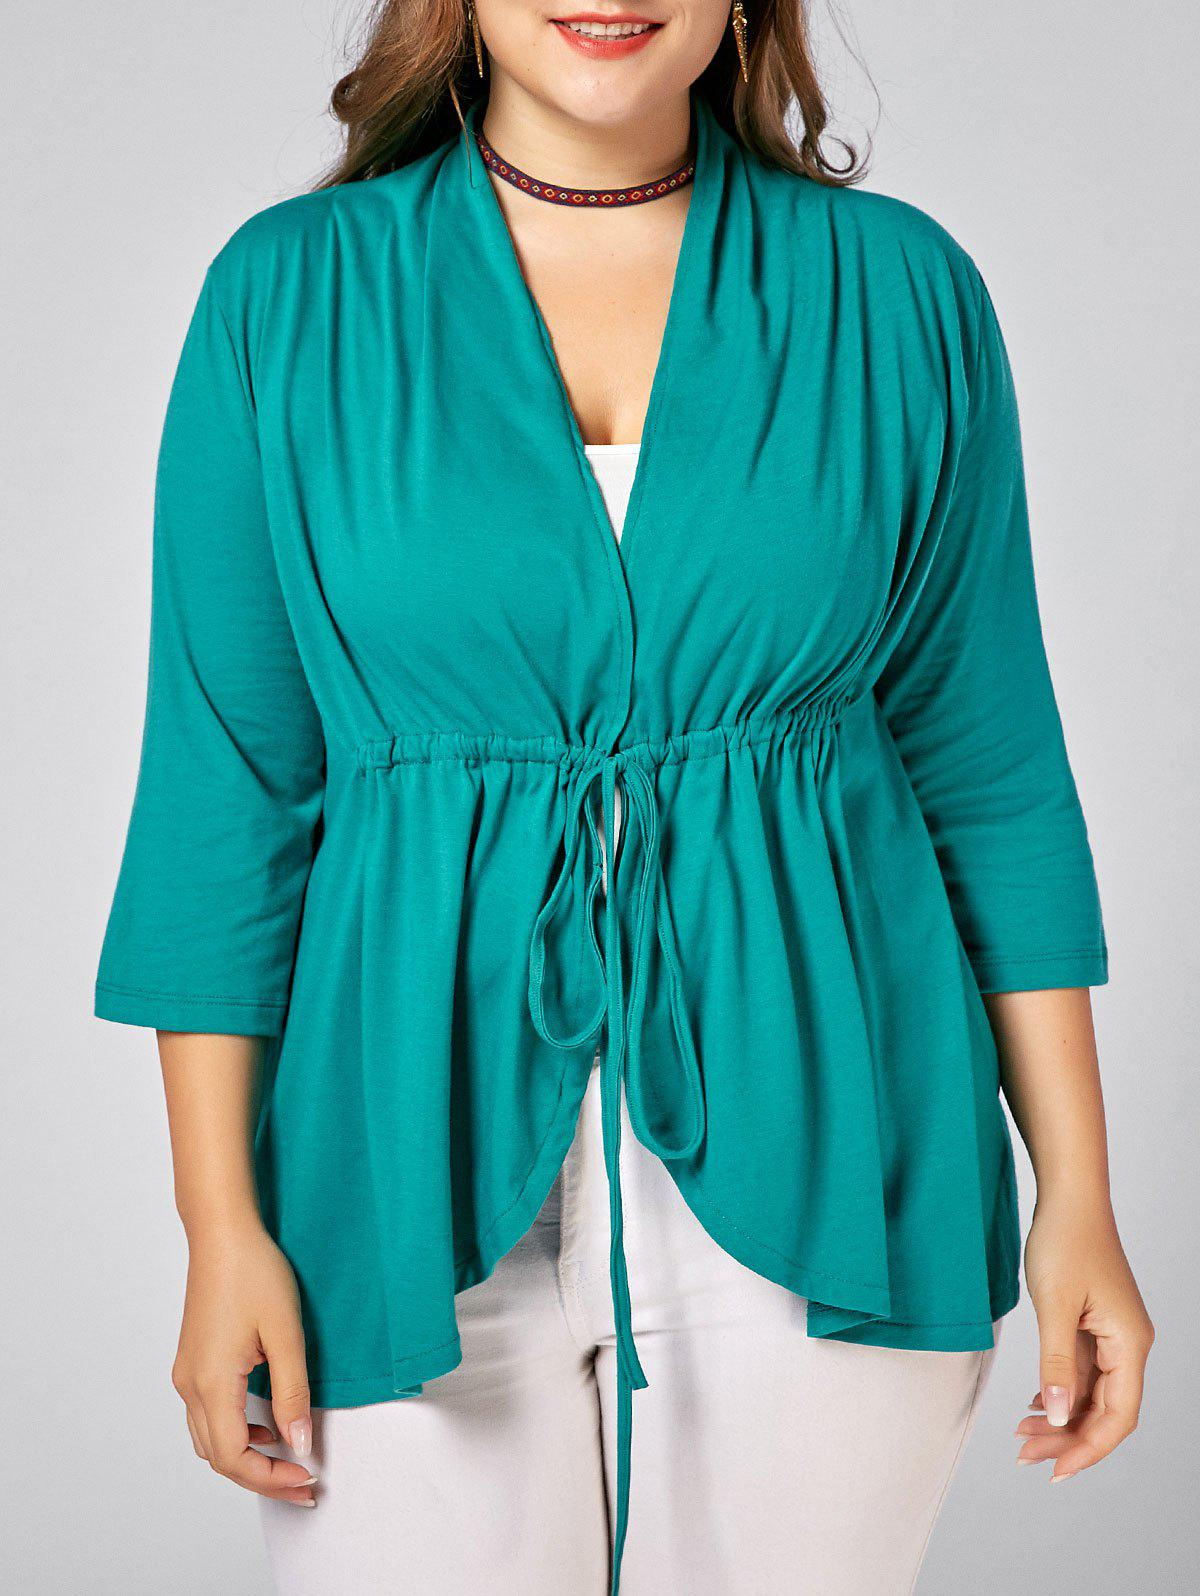 Drawstring Plus Size V Neck Peplum Top - PEACOCK BLUE 4XL